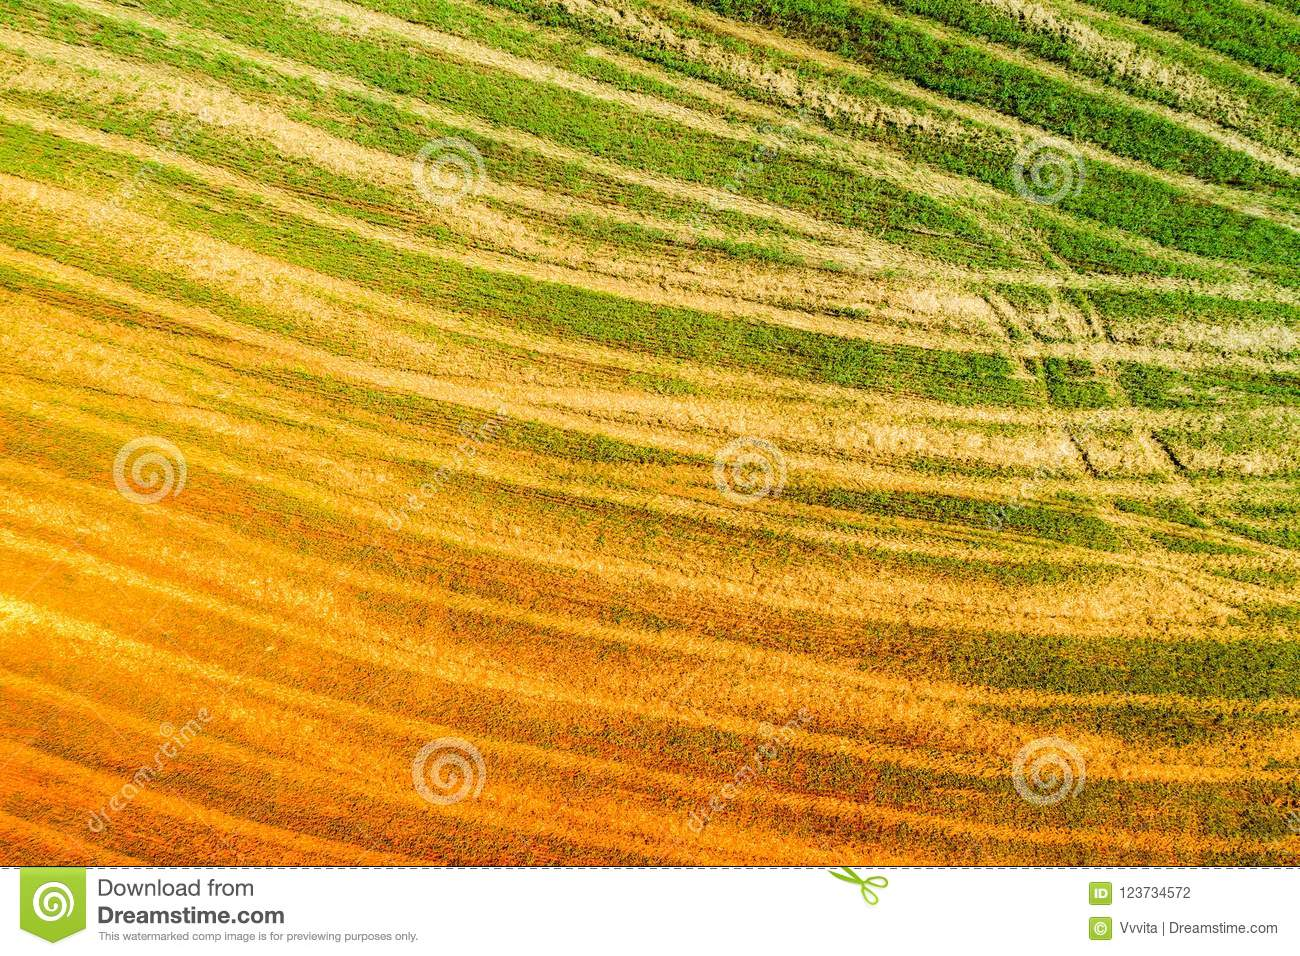 Abstract nature background created from the photo of the beveled field